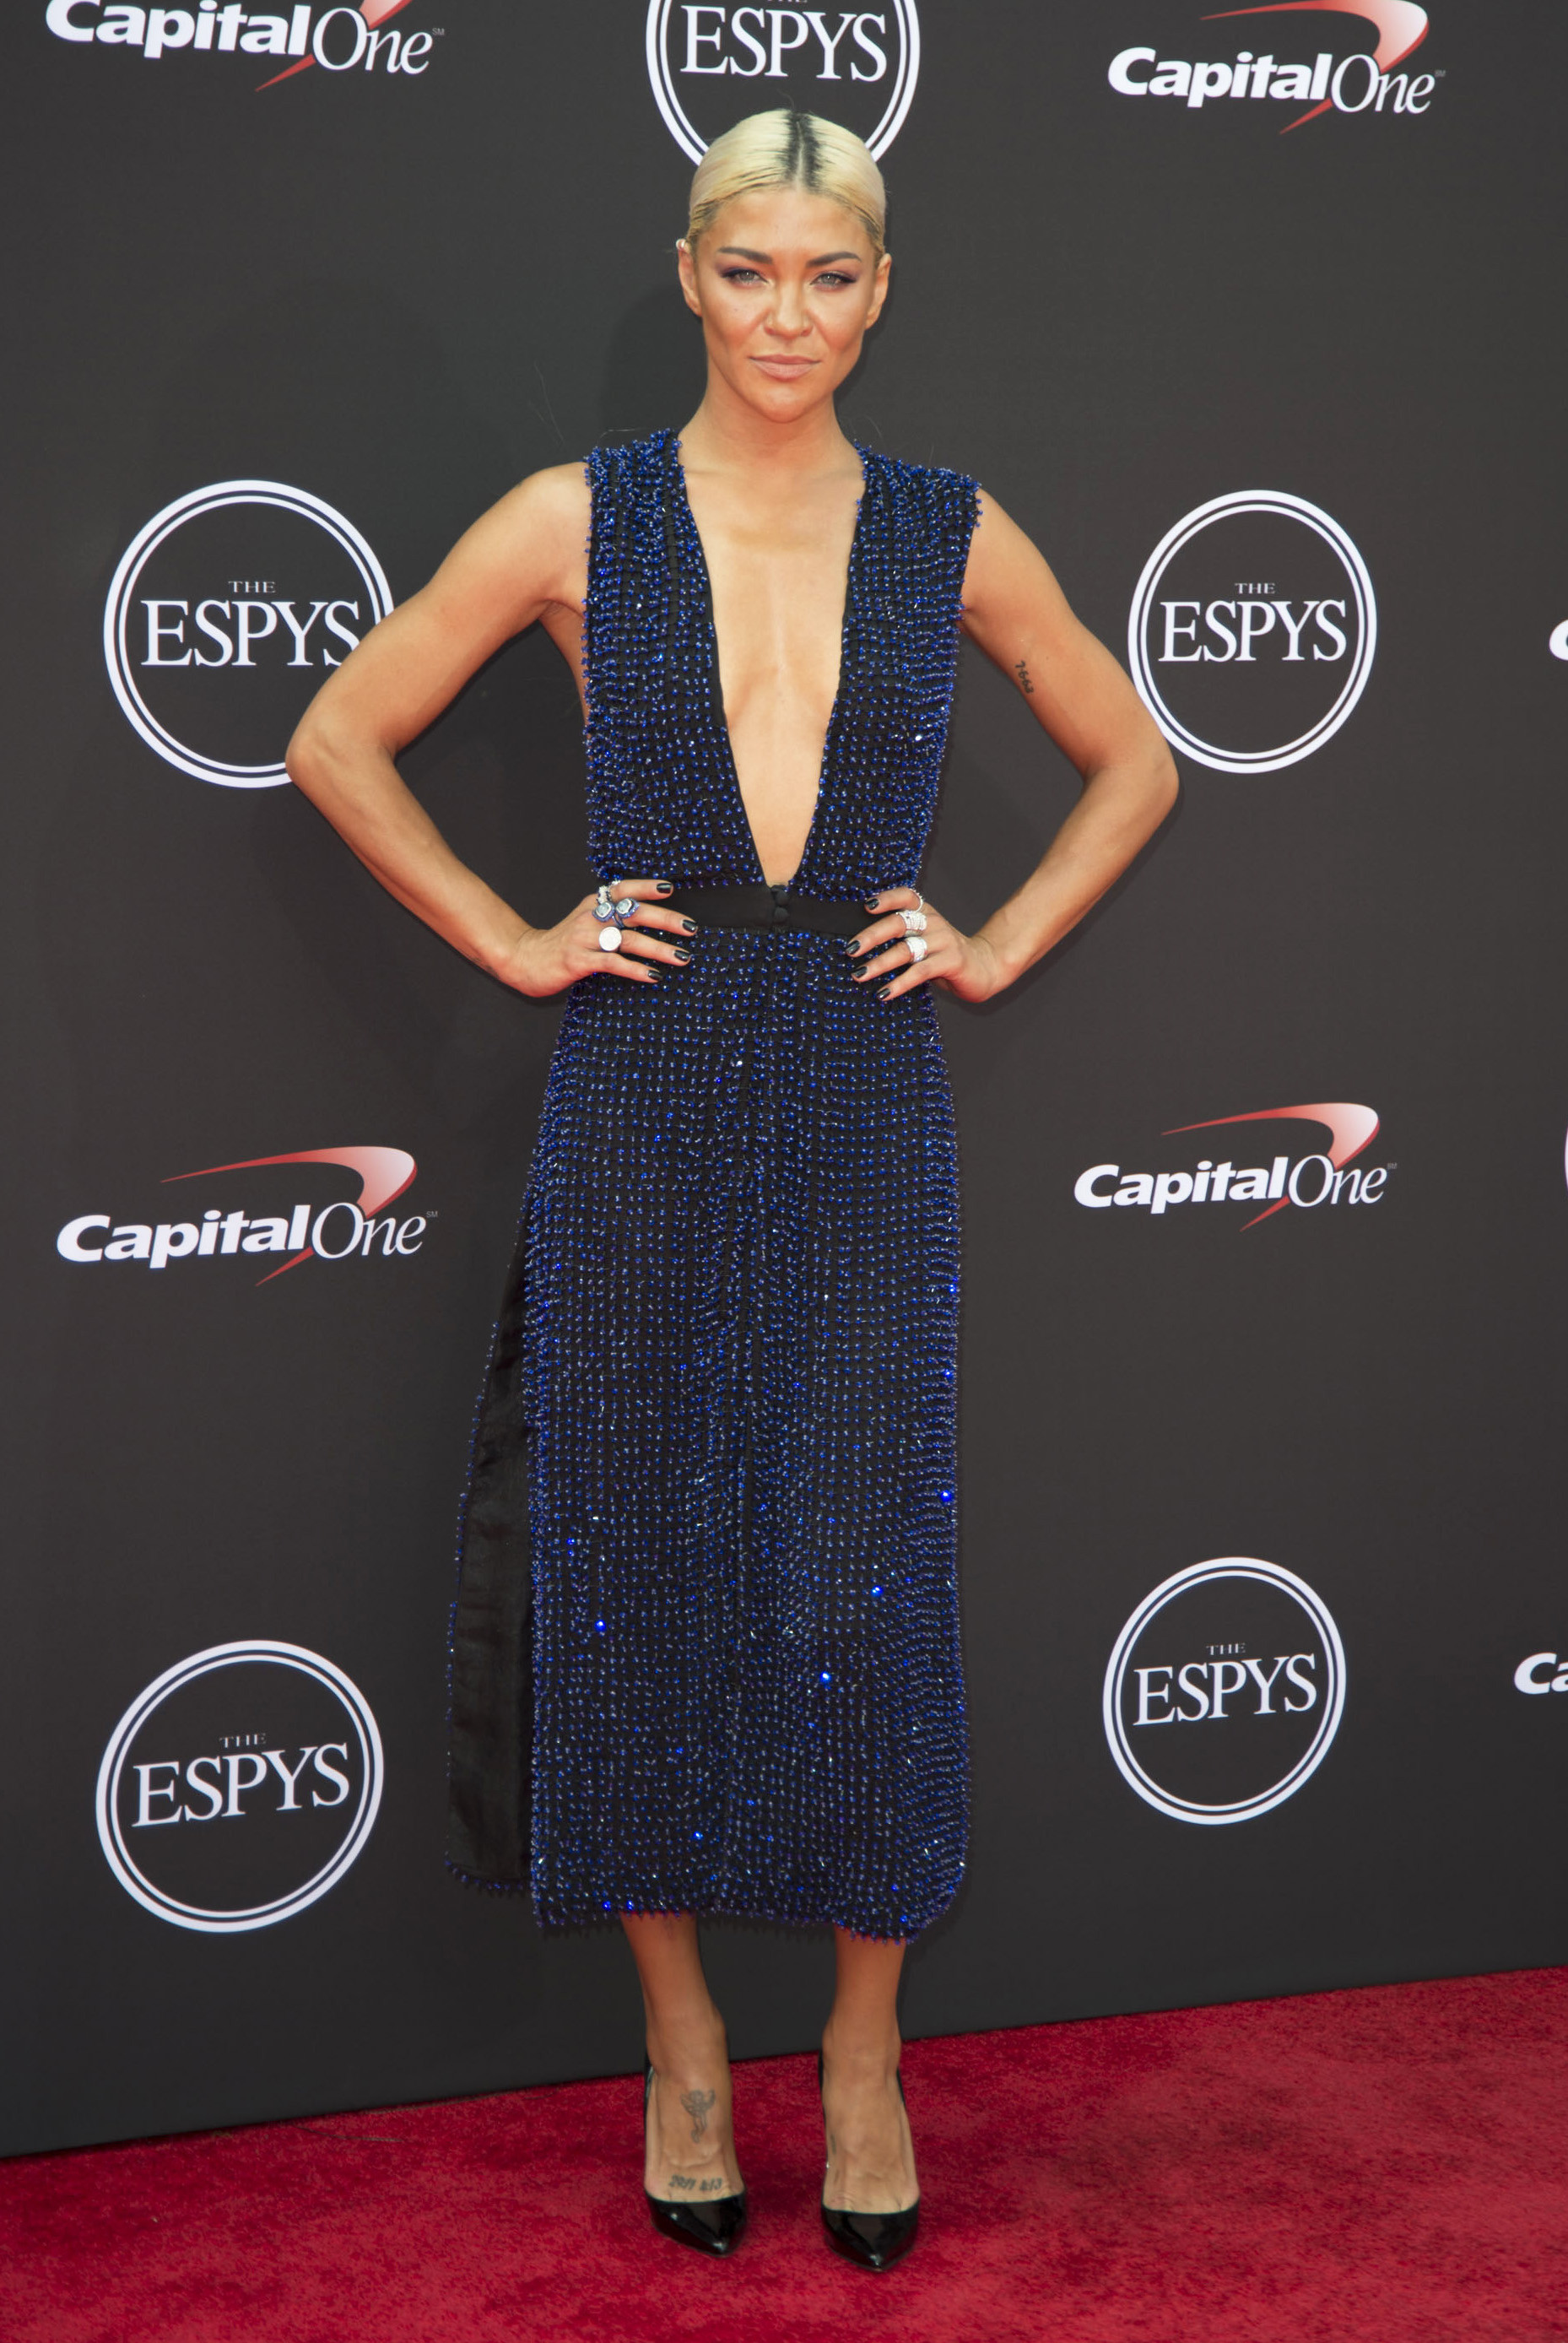 JESSICA SZOHR-espys - Wearing a navy beaded Steven Khalil mididress with a plunging neckline and waist-high slits.